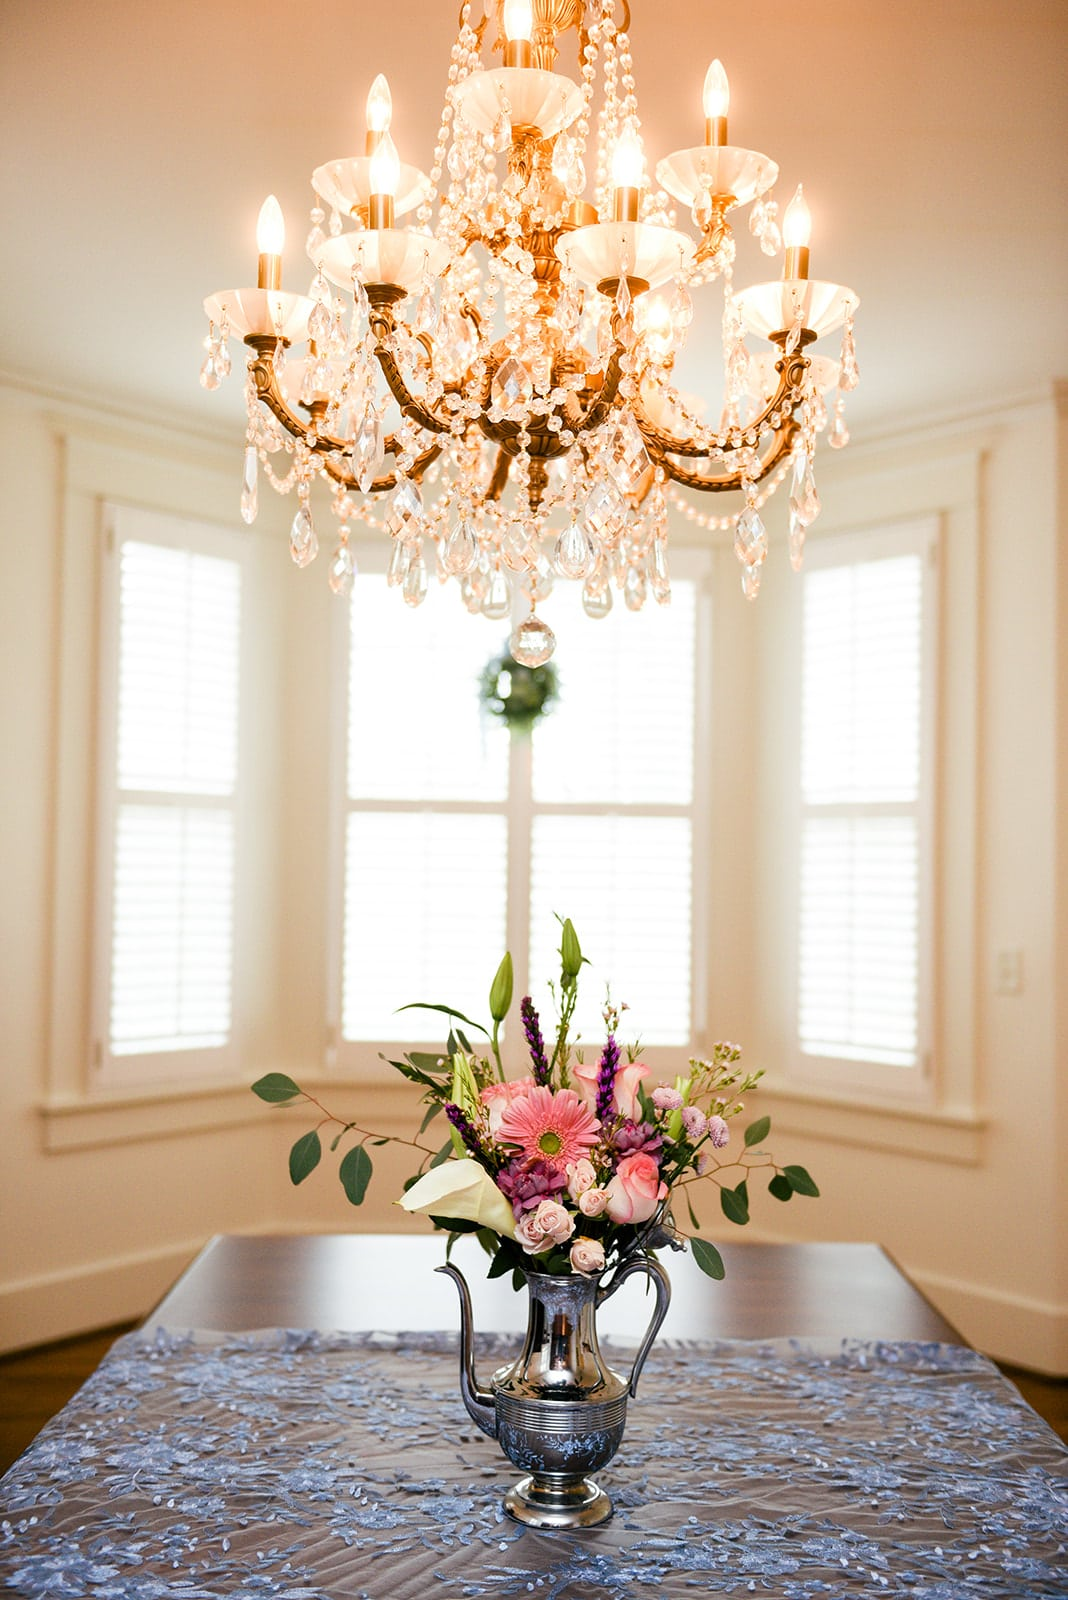 Sweet & Intimate In-Home Wedding by Photography by Janae featured on Nashville Bride Guide